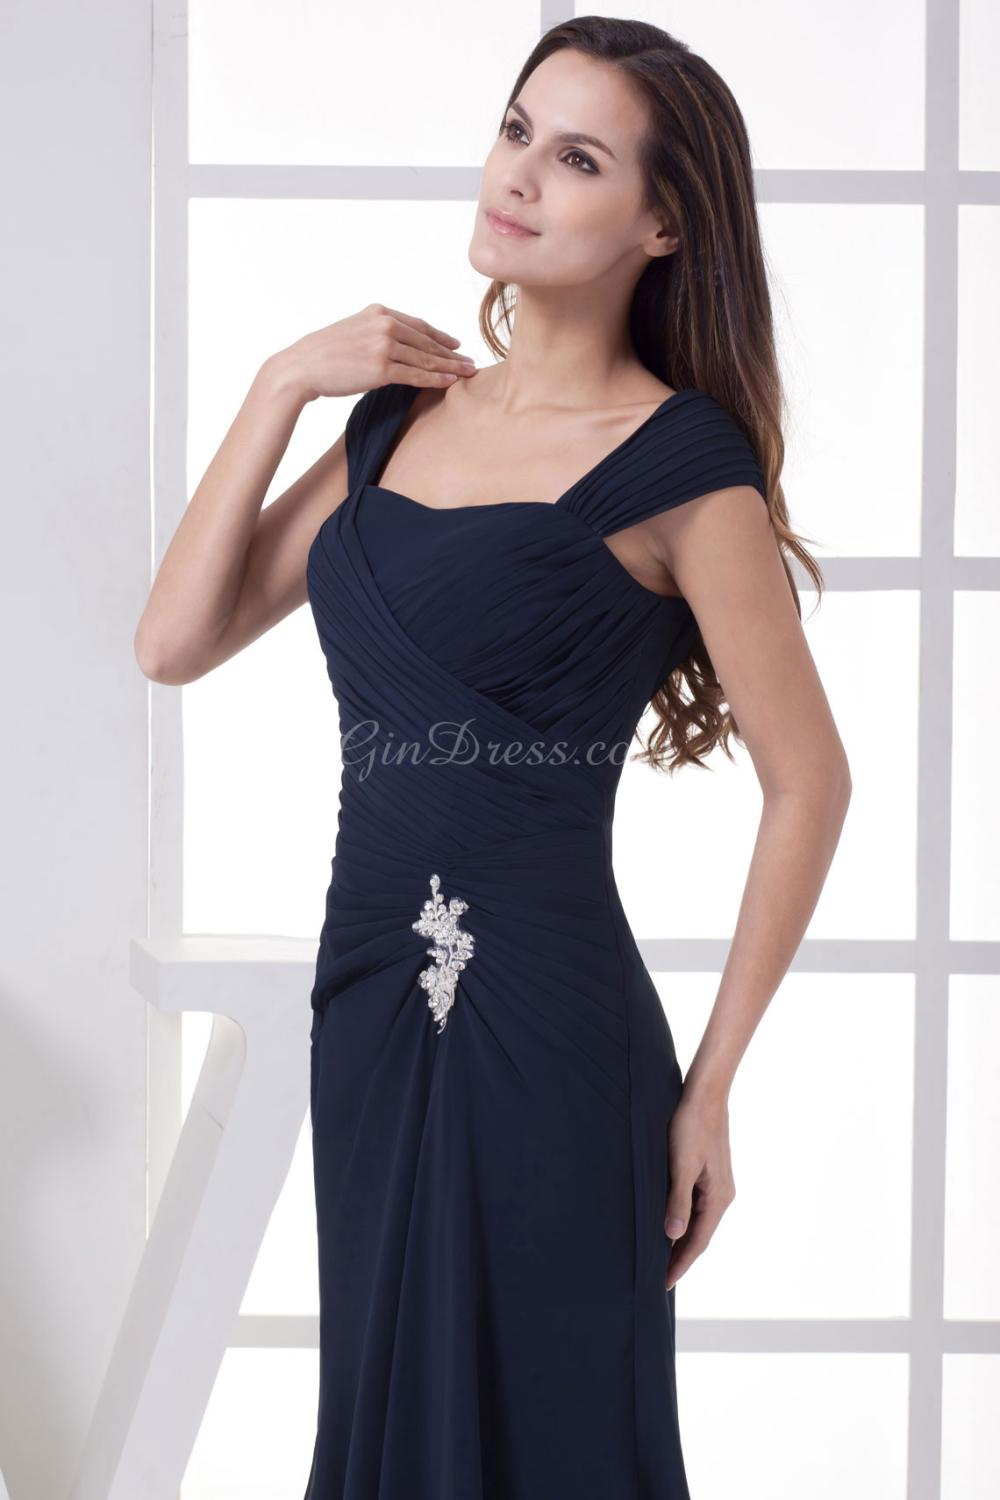 Gold bridesmaid dresses uk navy blue fashionable little girls gold bridesmaid dresses uk navy blue fashionable little girls gothic junior built in bra sleeveless natural a 2015 free shipping in bridesmaid dresses from ombrellifo Images